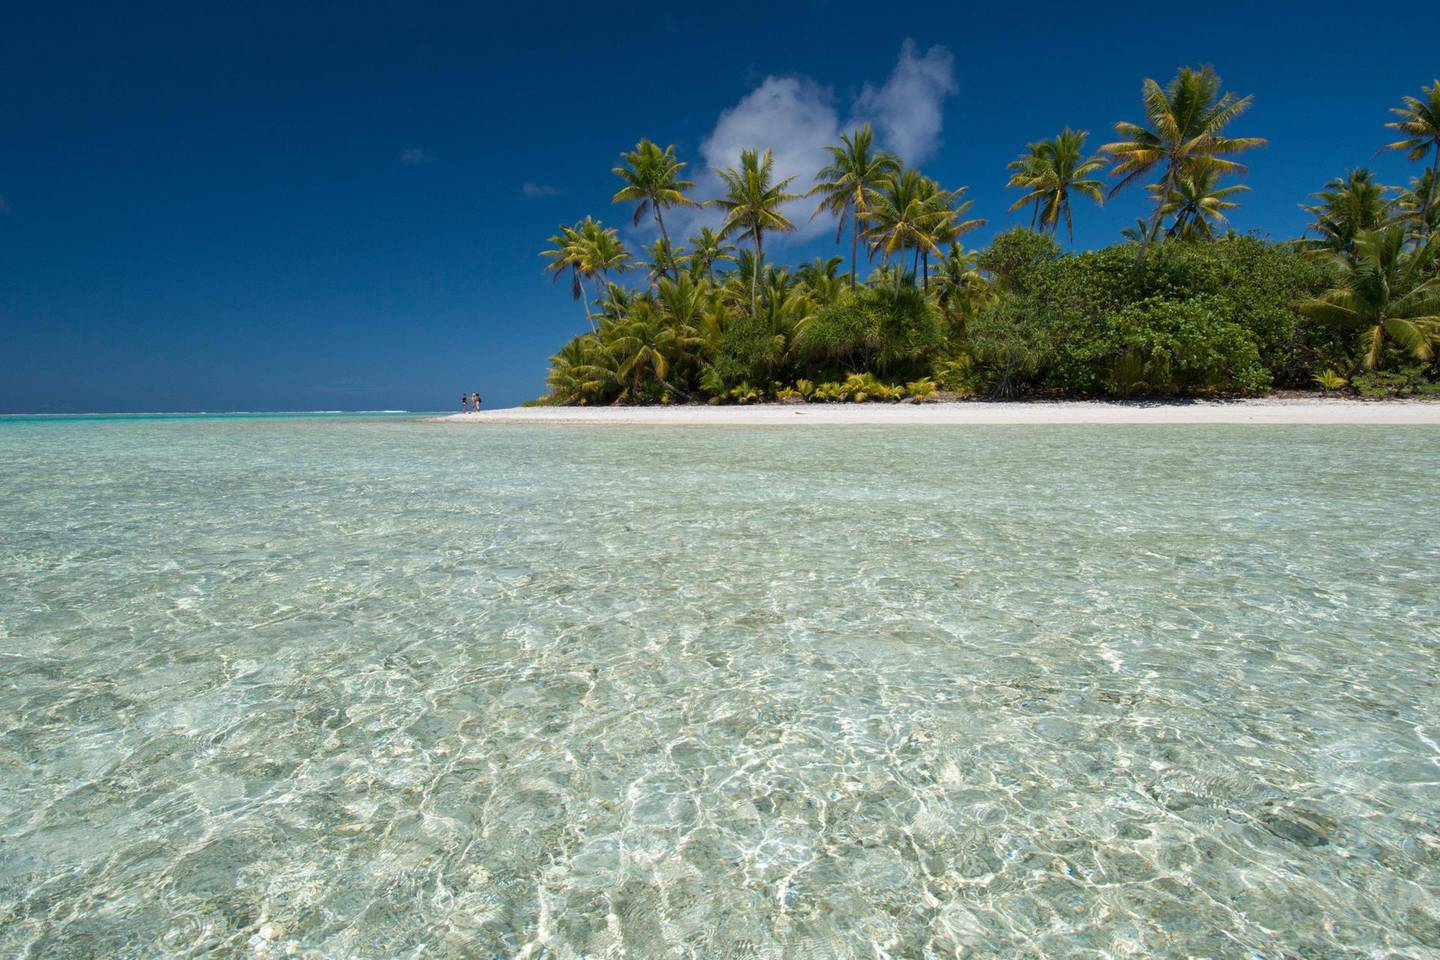 J2F3P6 Cook Islands. Palmerston Island, a classic atoll, discovered by Captain Cook in 1774. Current population of 62 people, are all descendants of William Marsters (aka Masters). Beach view with person in the distance. Alamy